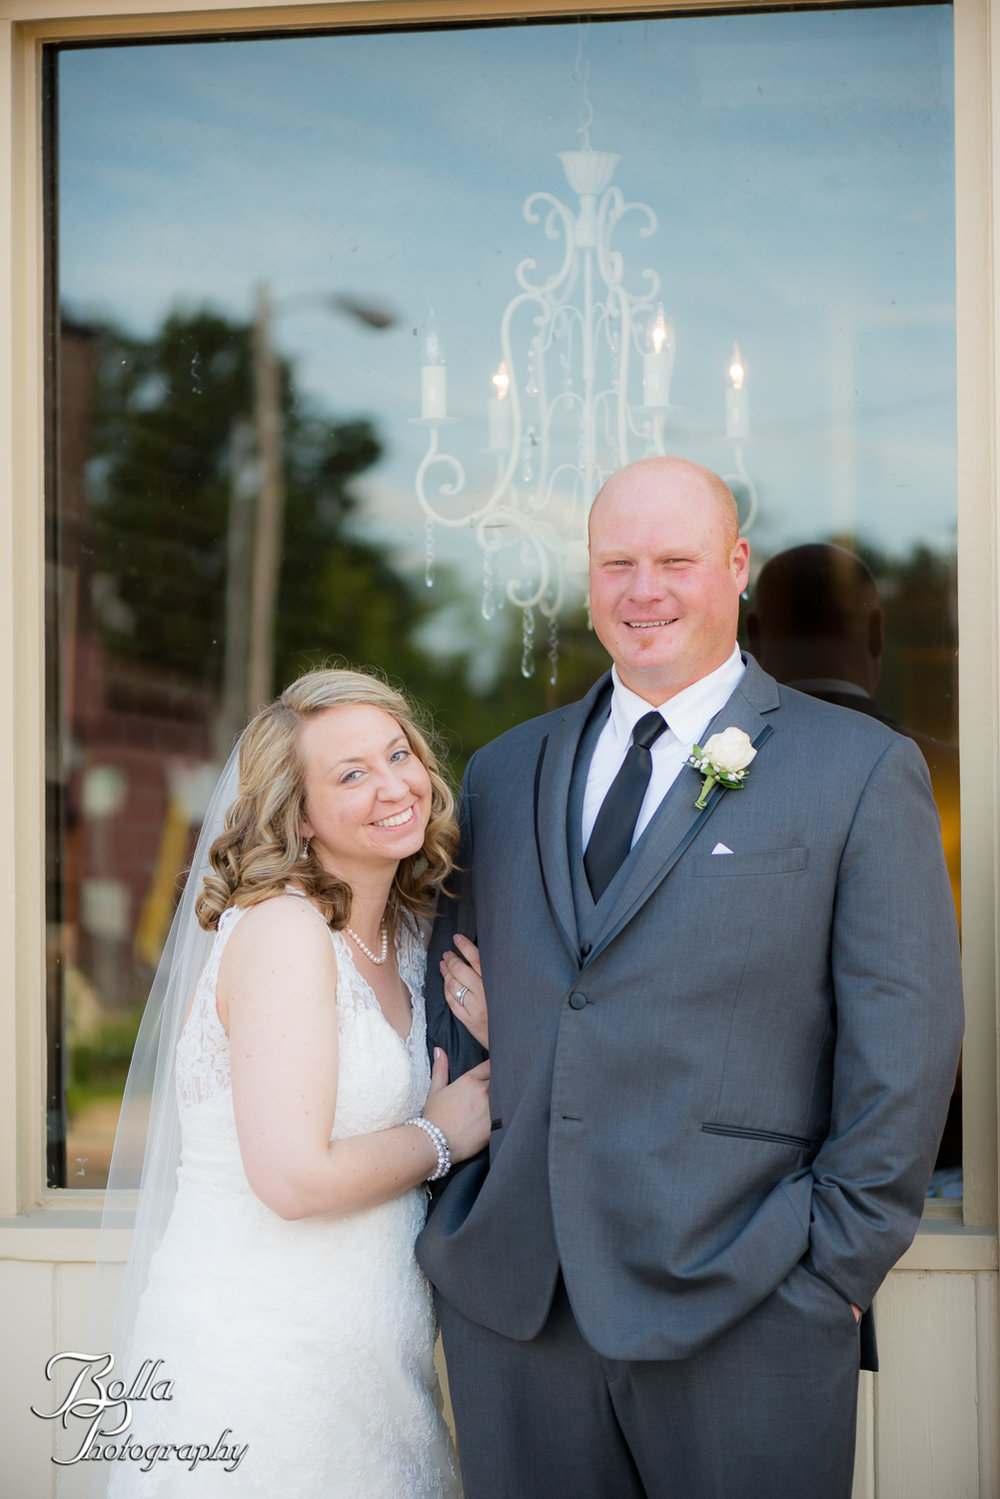 Bolla_Photography_St_Louis_wedding_photographer_Wildey_Theater_Edwardsville-0241.jpg